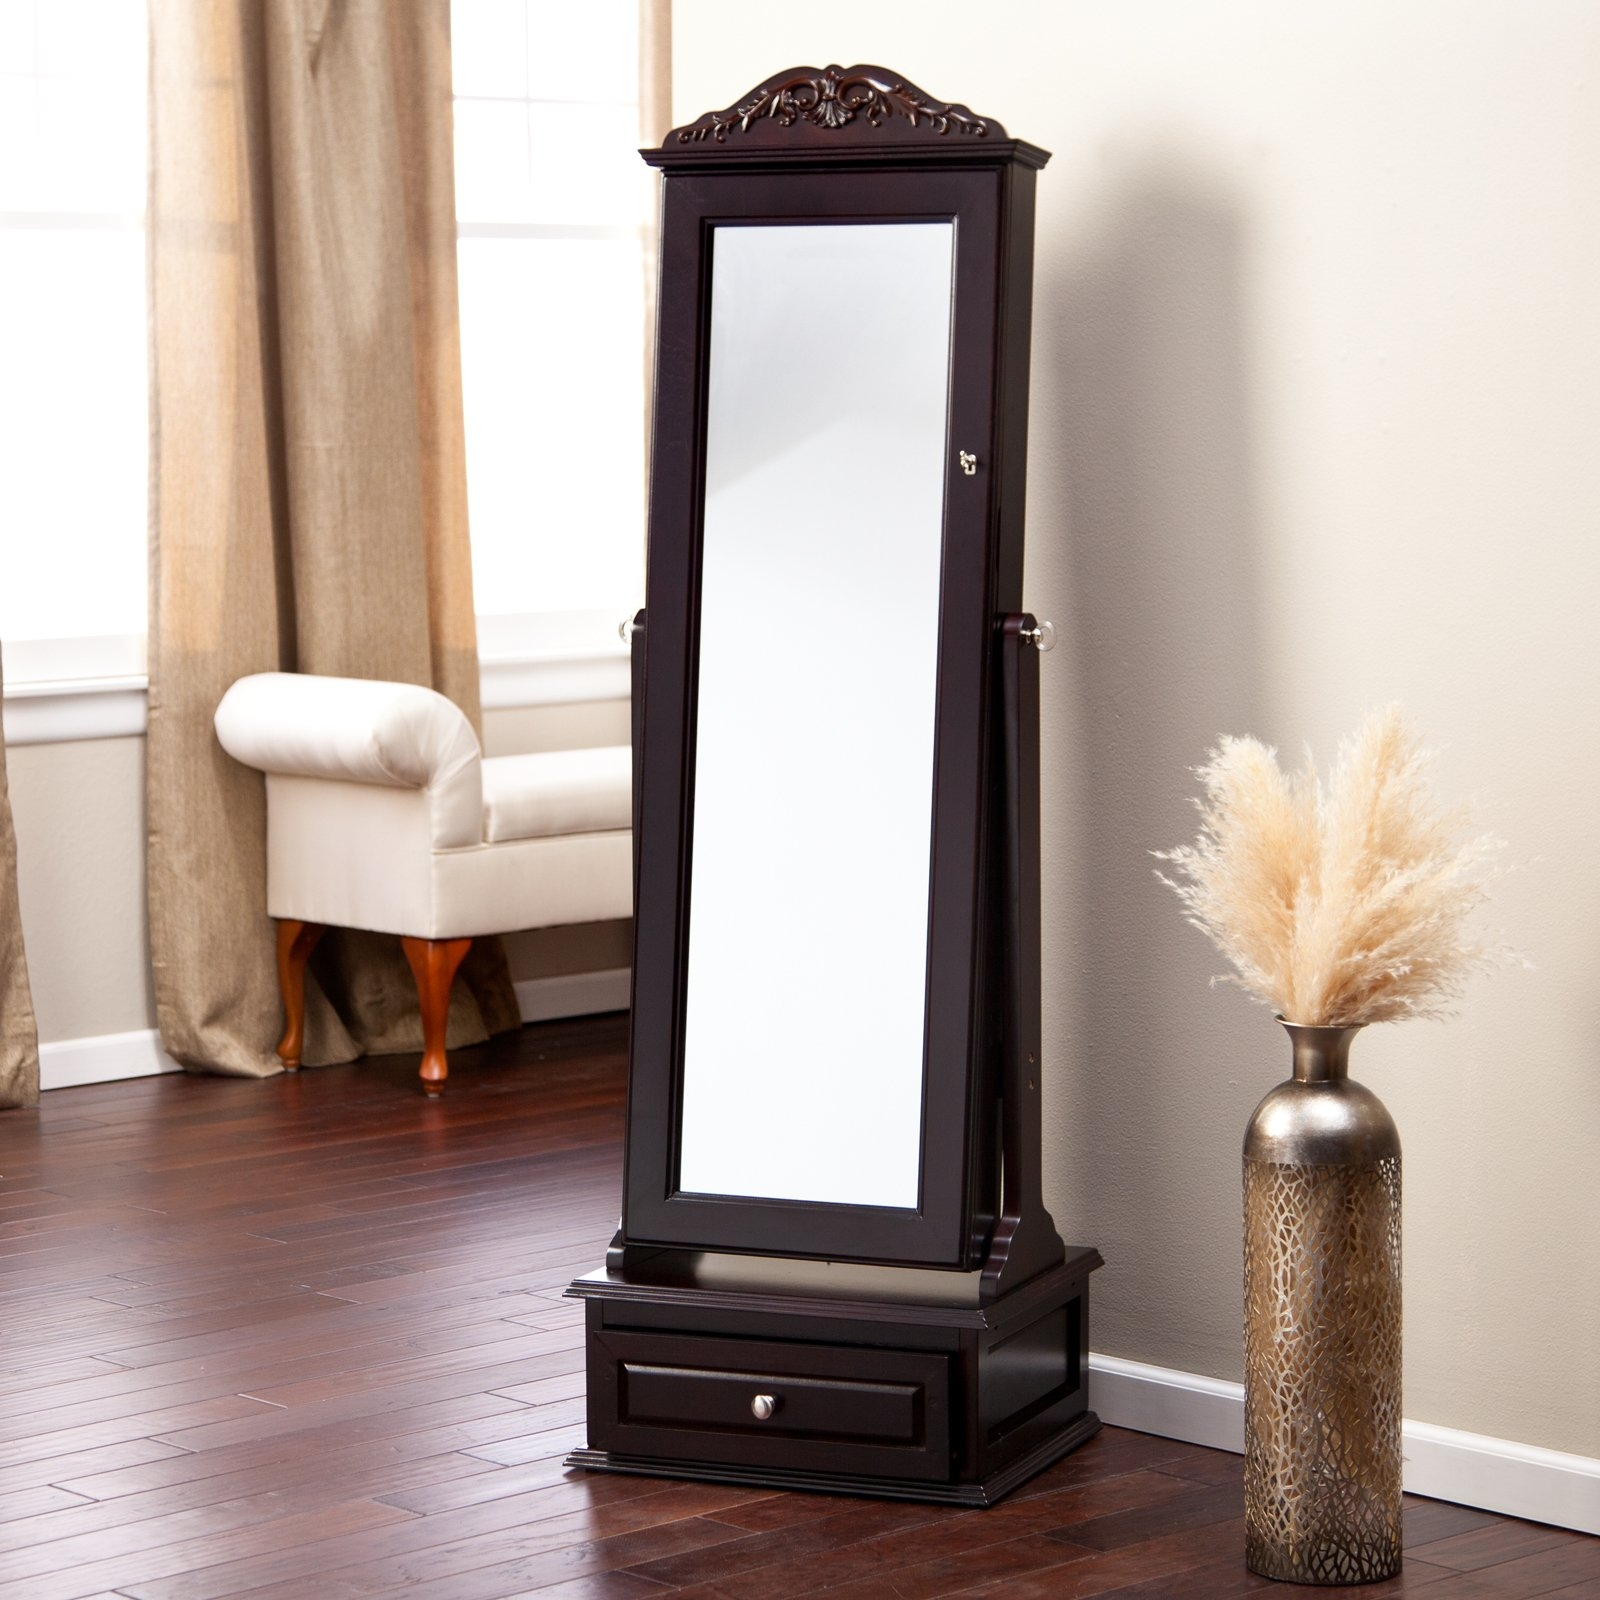 Standing Mirror Jewelry Cabinet Mf Cabinets With Regard To Black Floor Standing Mirror (Image 14 of 15)